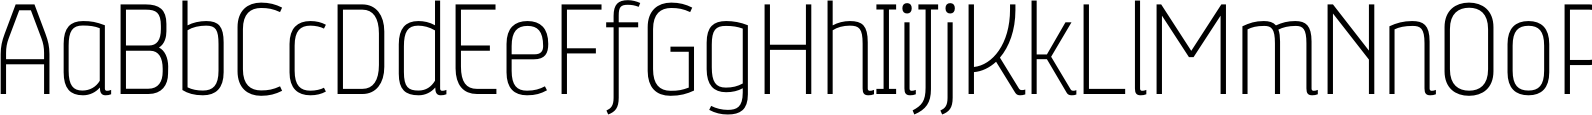 Styling Alt ExtraLight Font